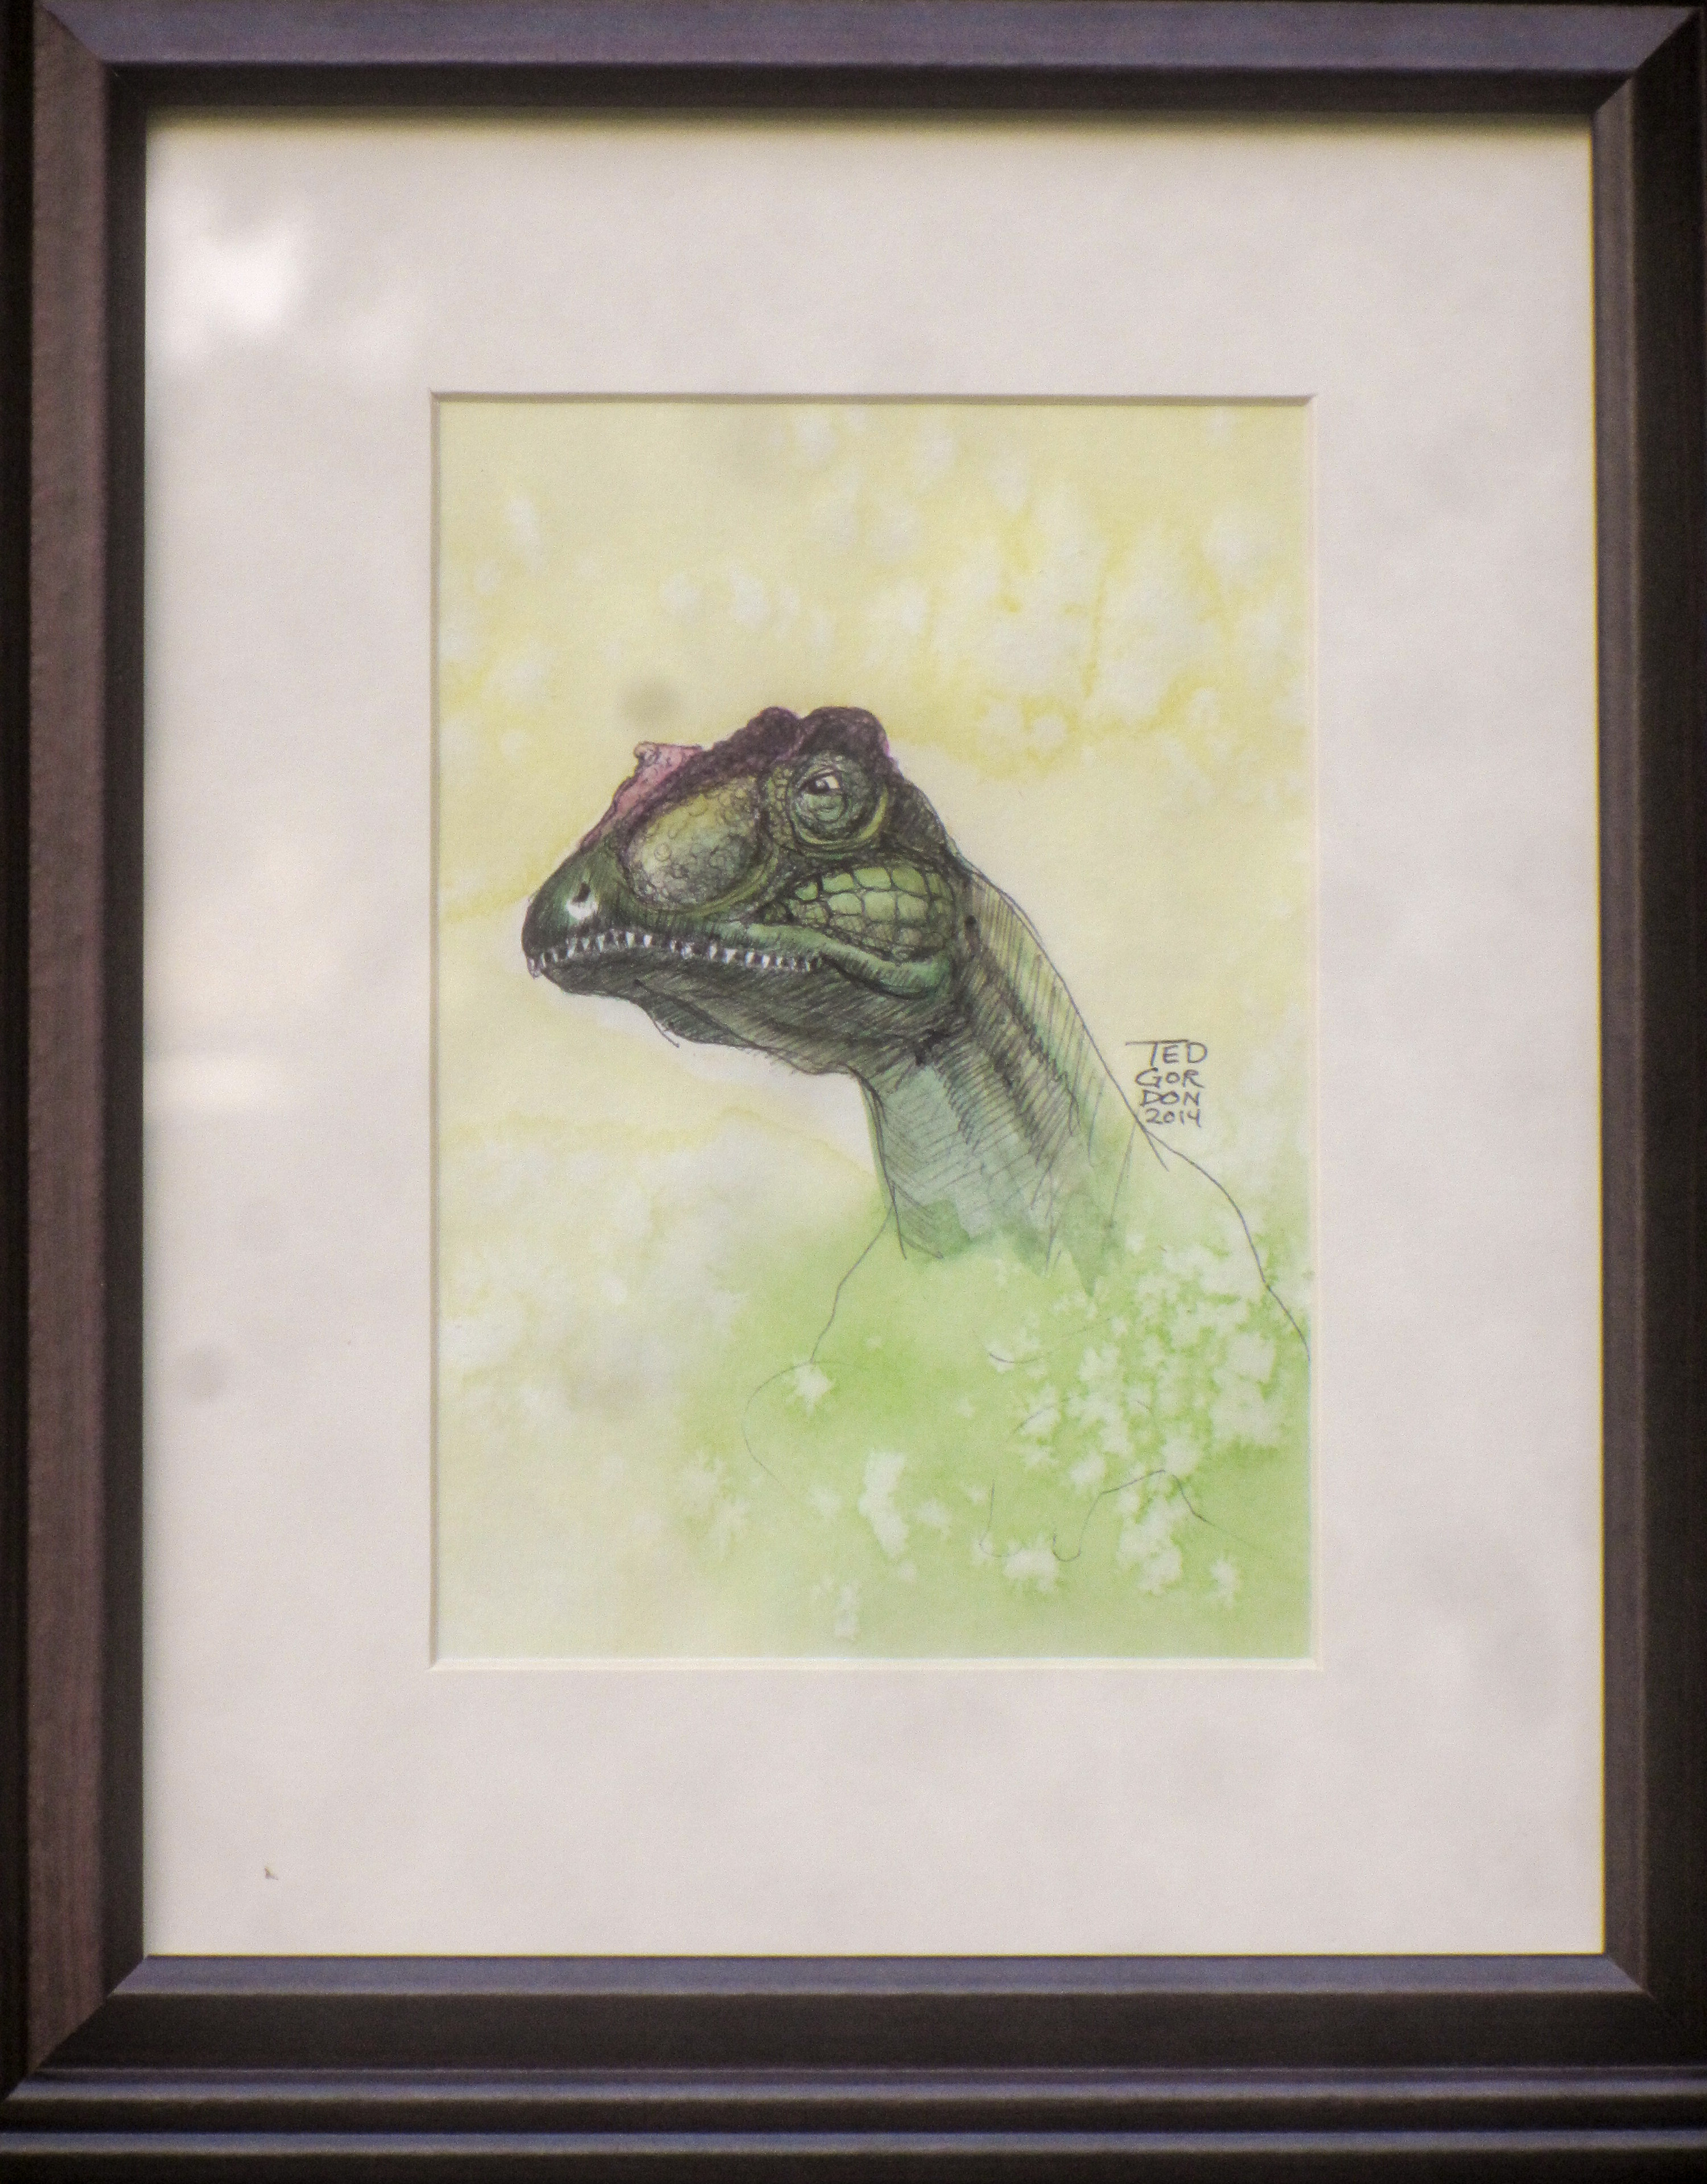 Ted Gordon Allosaurus Watercolor Sketch Framed 2014